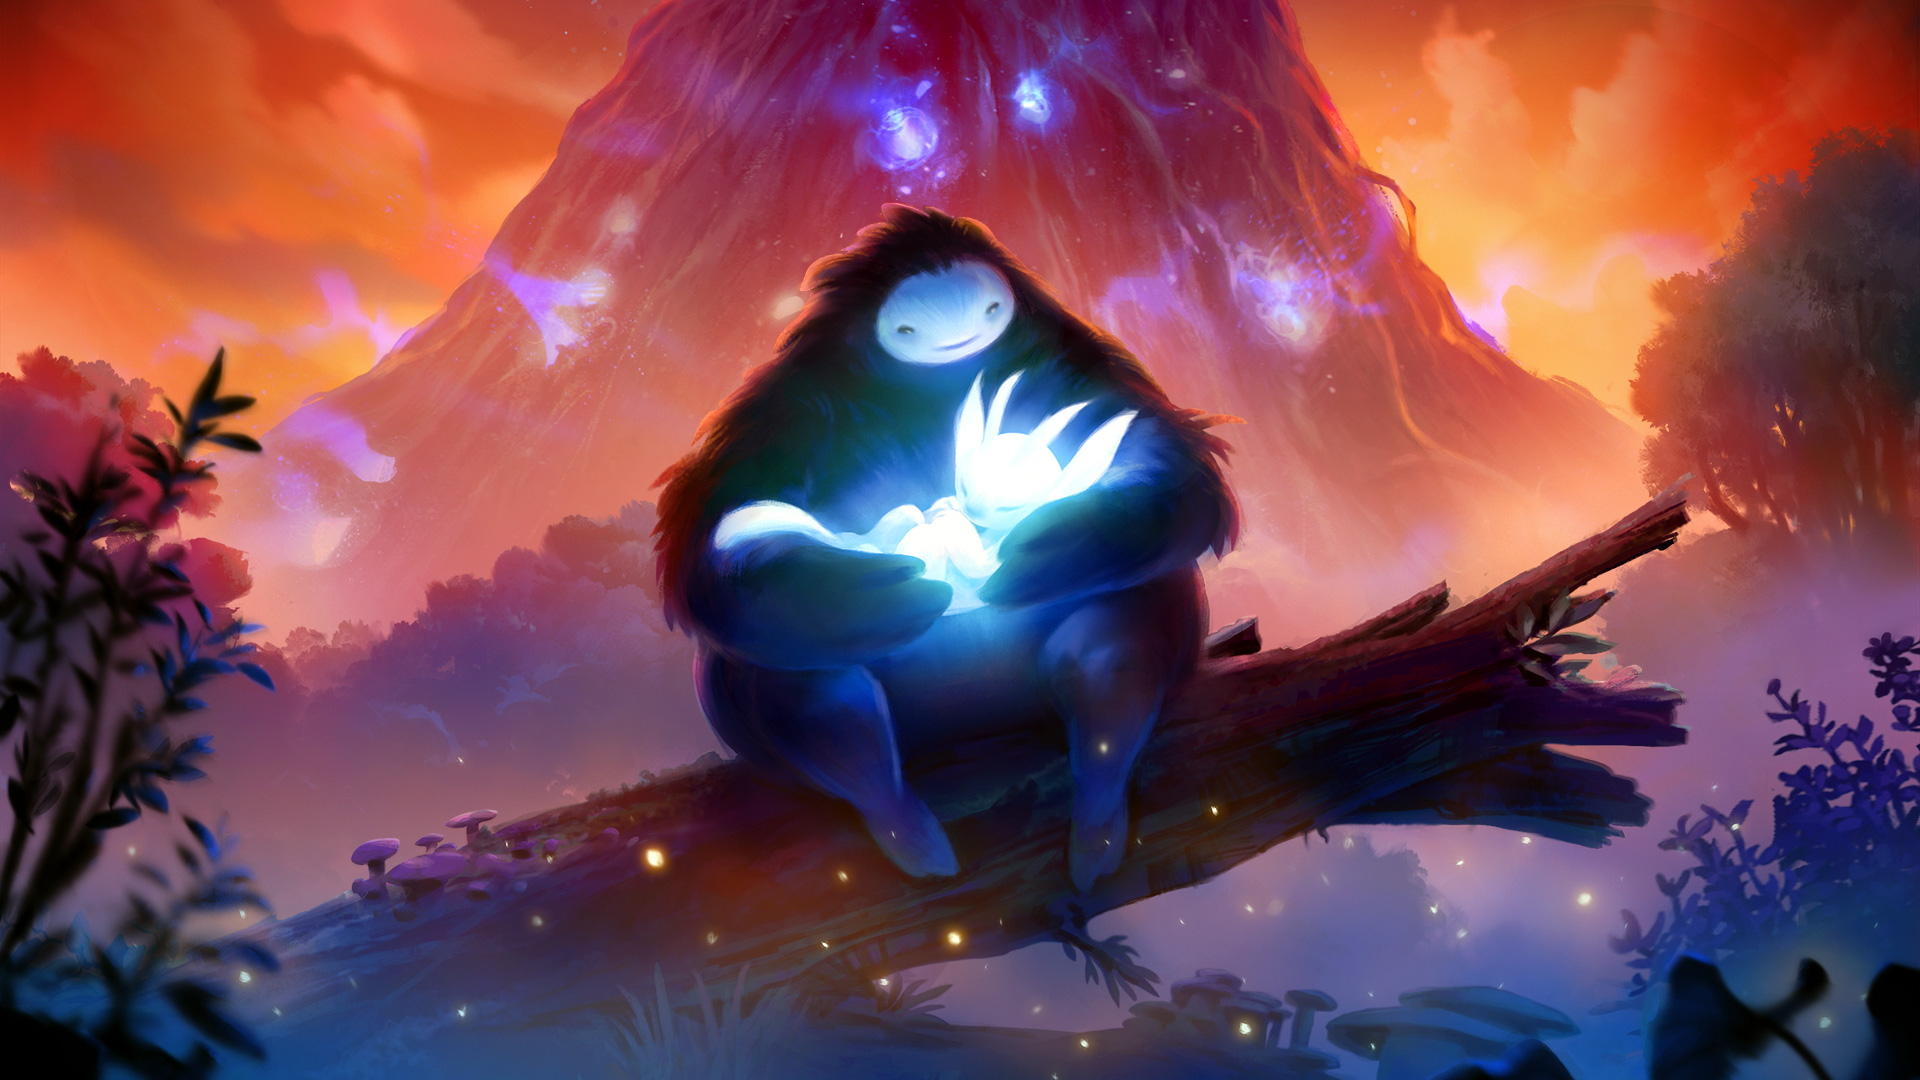 ori and the blind forest hd, hd games, 4k wallpapers, images